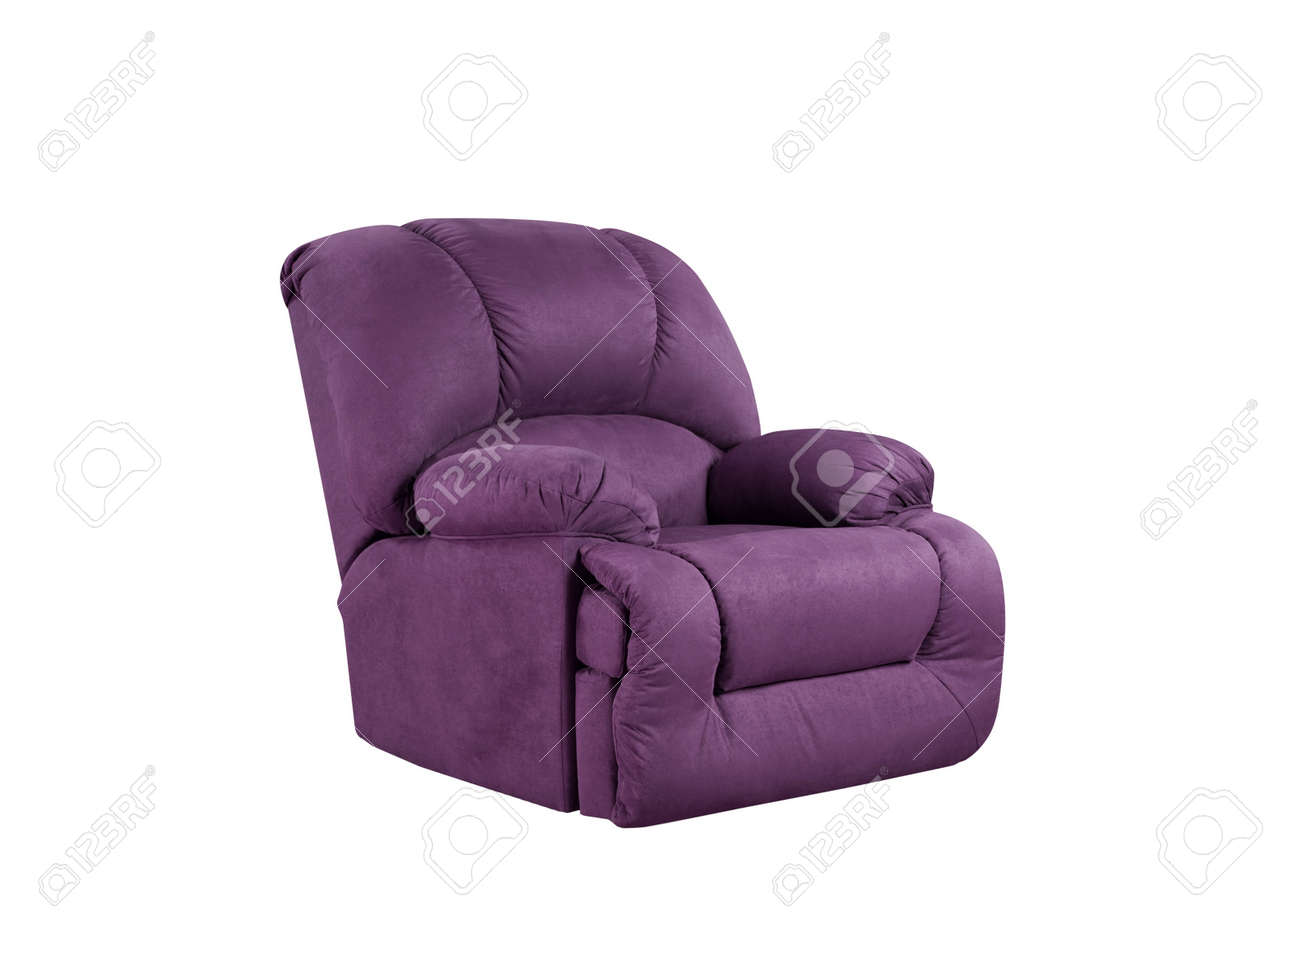 Amazing Bright Purple Leather Armchair Isolated On White Beatyapartments Chair Design Images Beatyapartmentscom